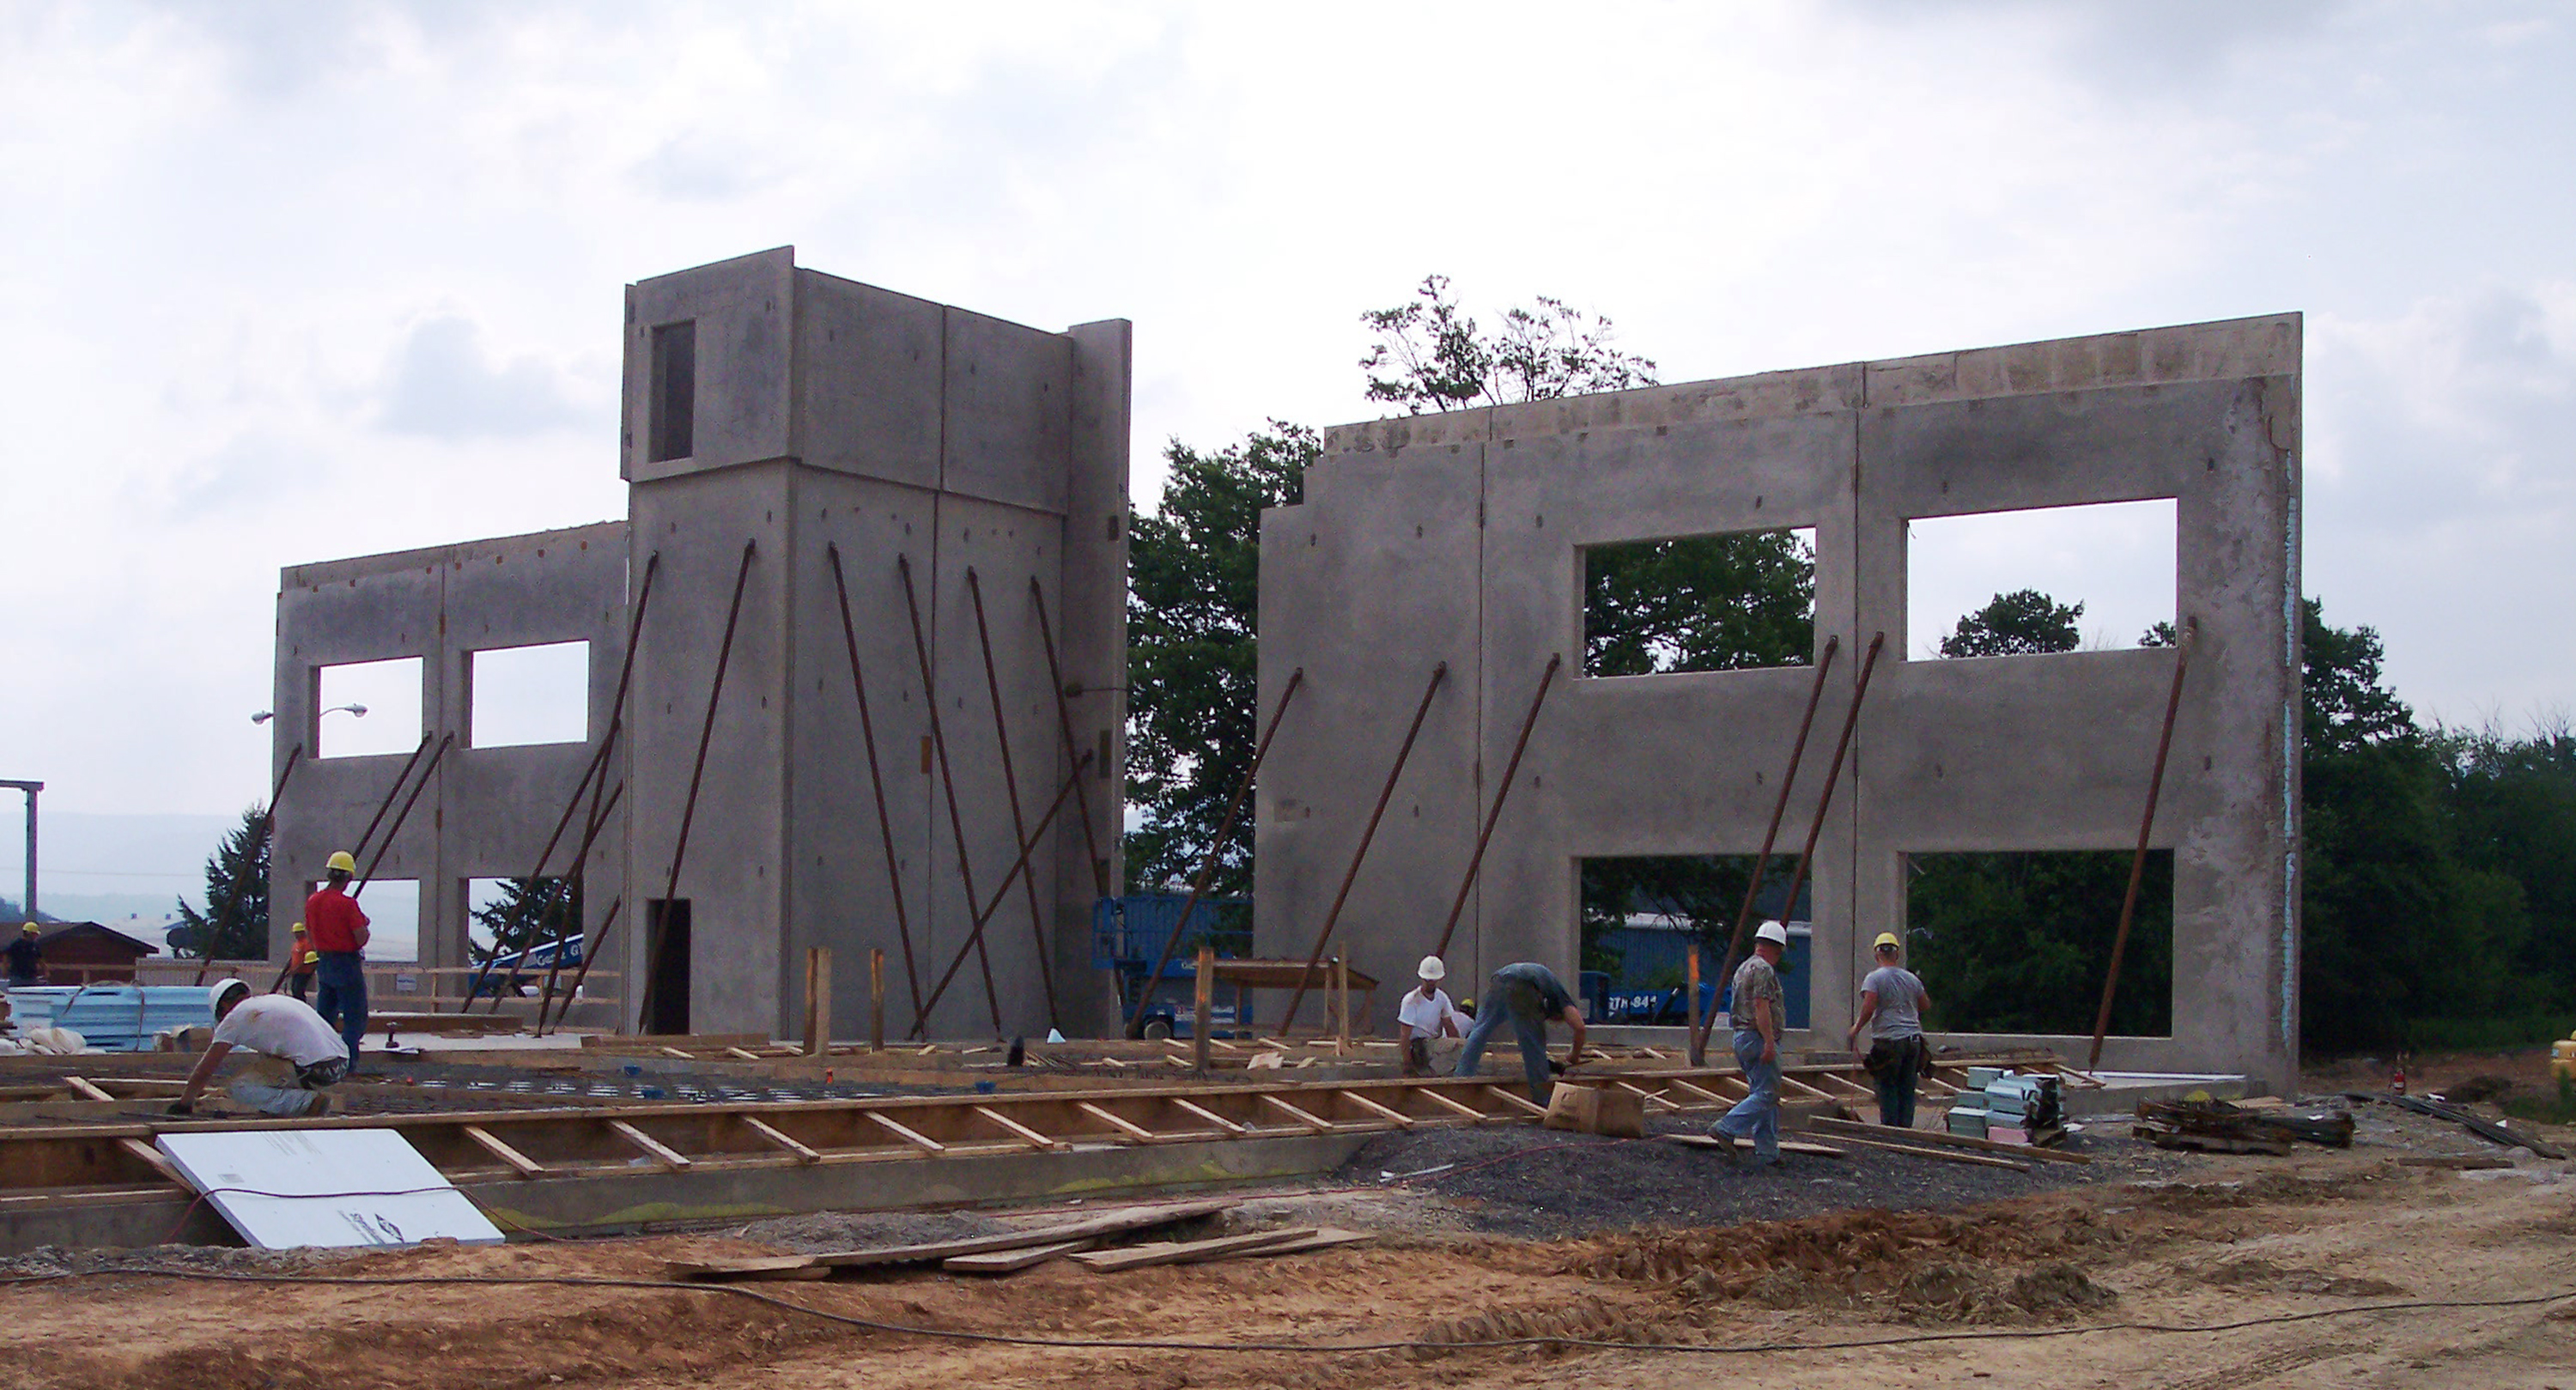 The Zartman team works on the GE Inspection Technologies building.